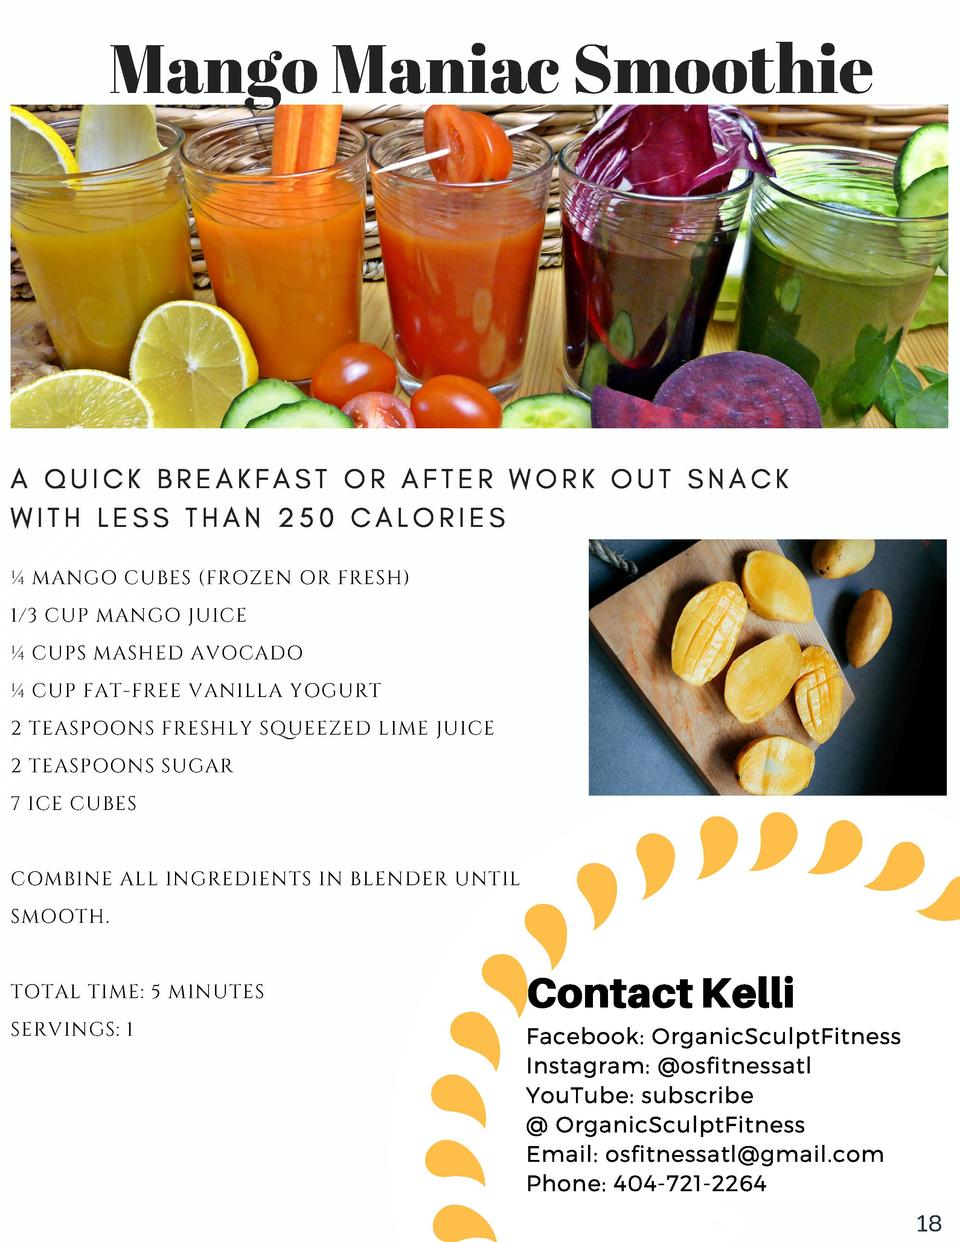 Mango Maniac Smoothie  A  QUICK  WITH  BREAKFAST  LESS  THAN  250  OR  AFTER  WORK  OUT  SNACK  CALORIES     MANGO CUBES  ...